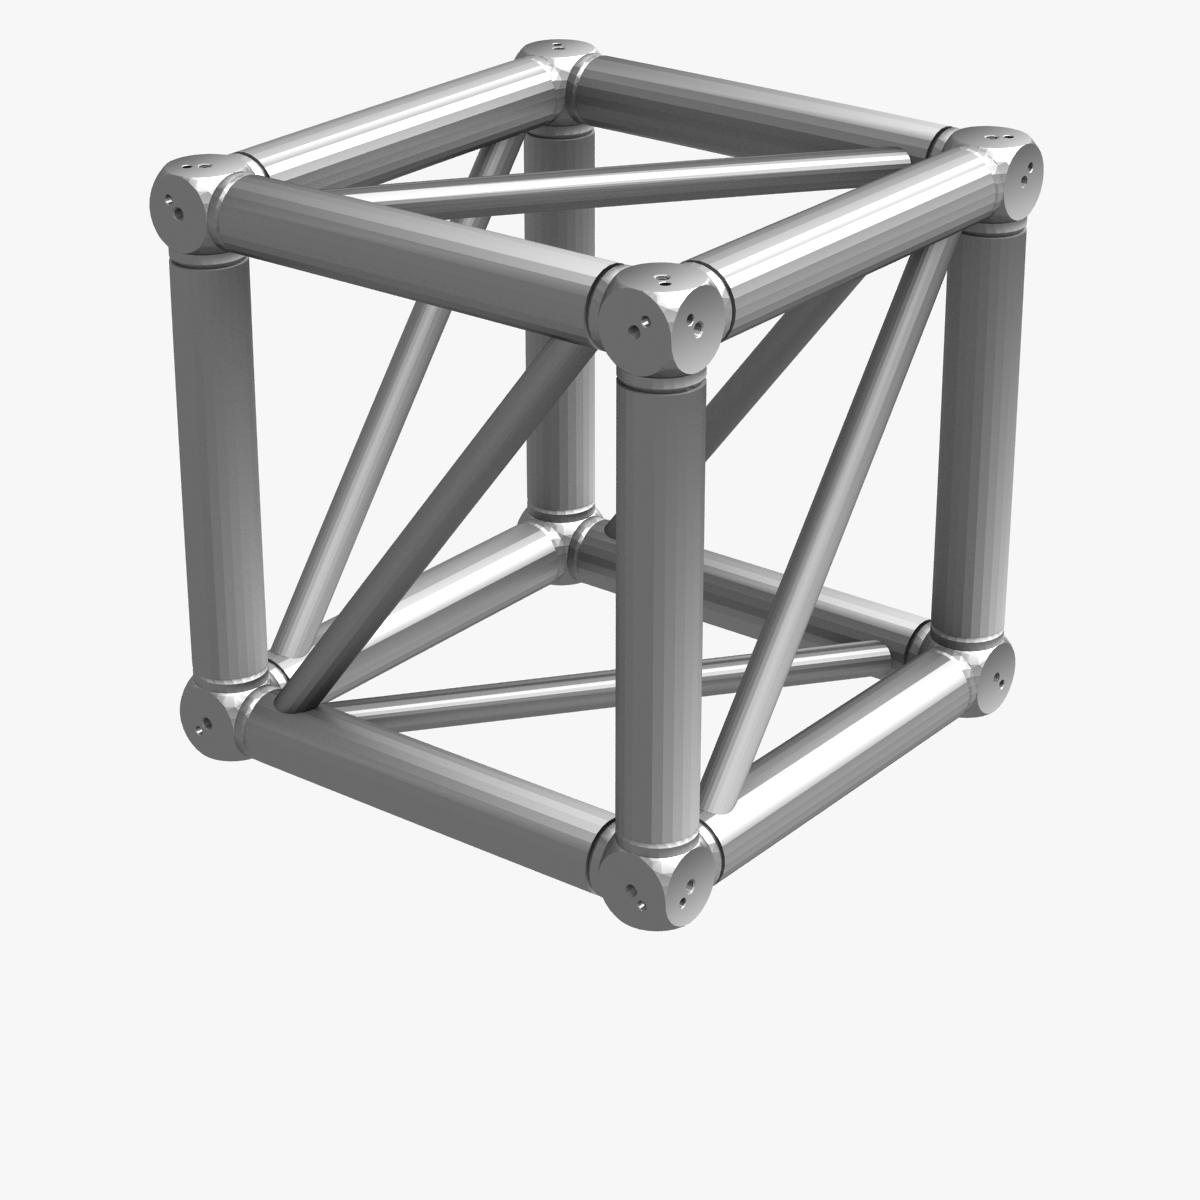 big square truss (collection 10 modular pieces) 3d model 3ds dxf fbx c4d dae  268562